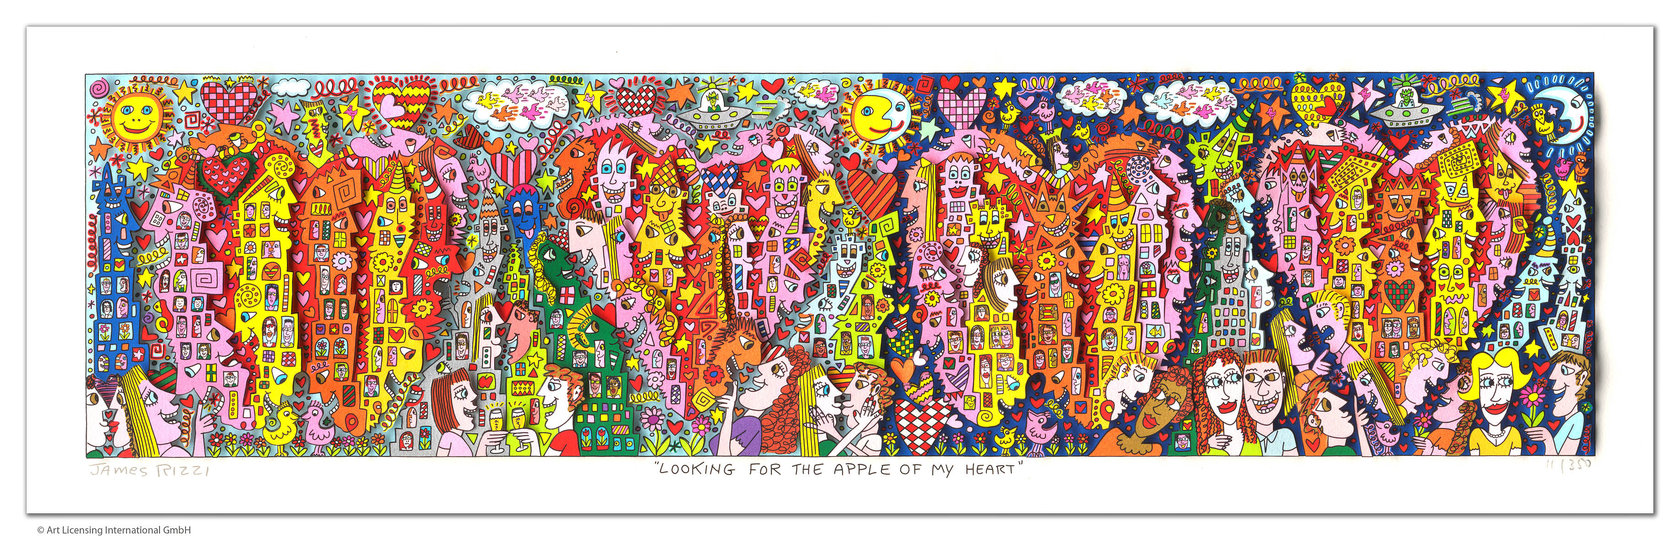 James Rizzi - LOOKING FOR THE APPLE OF MY HEART